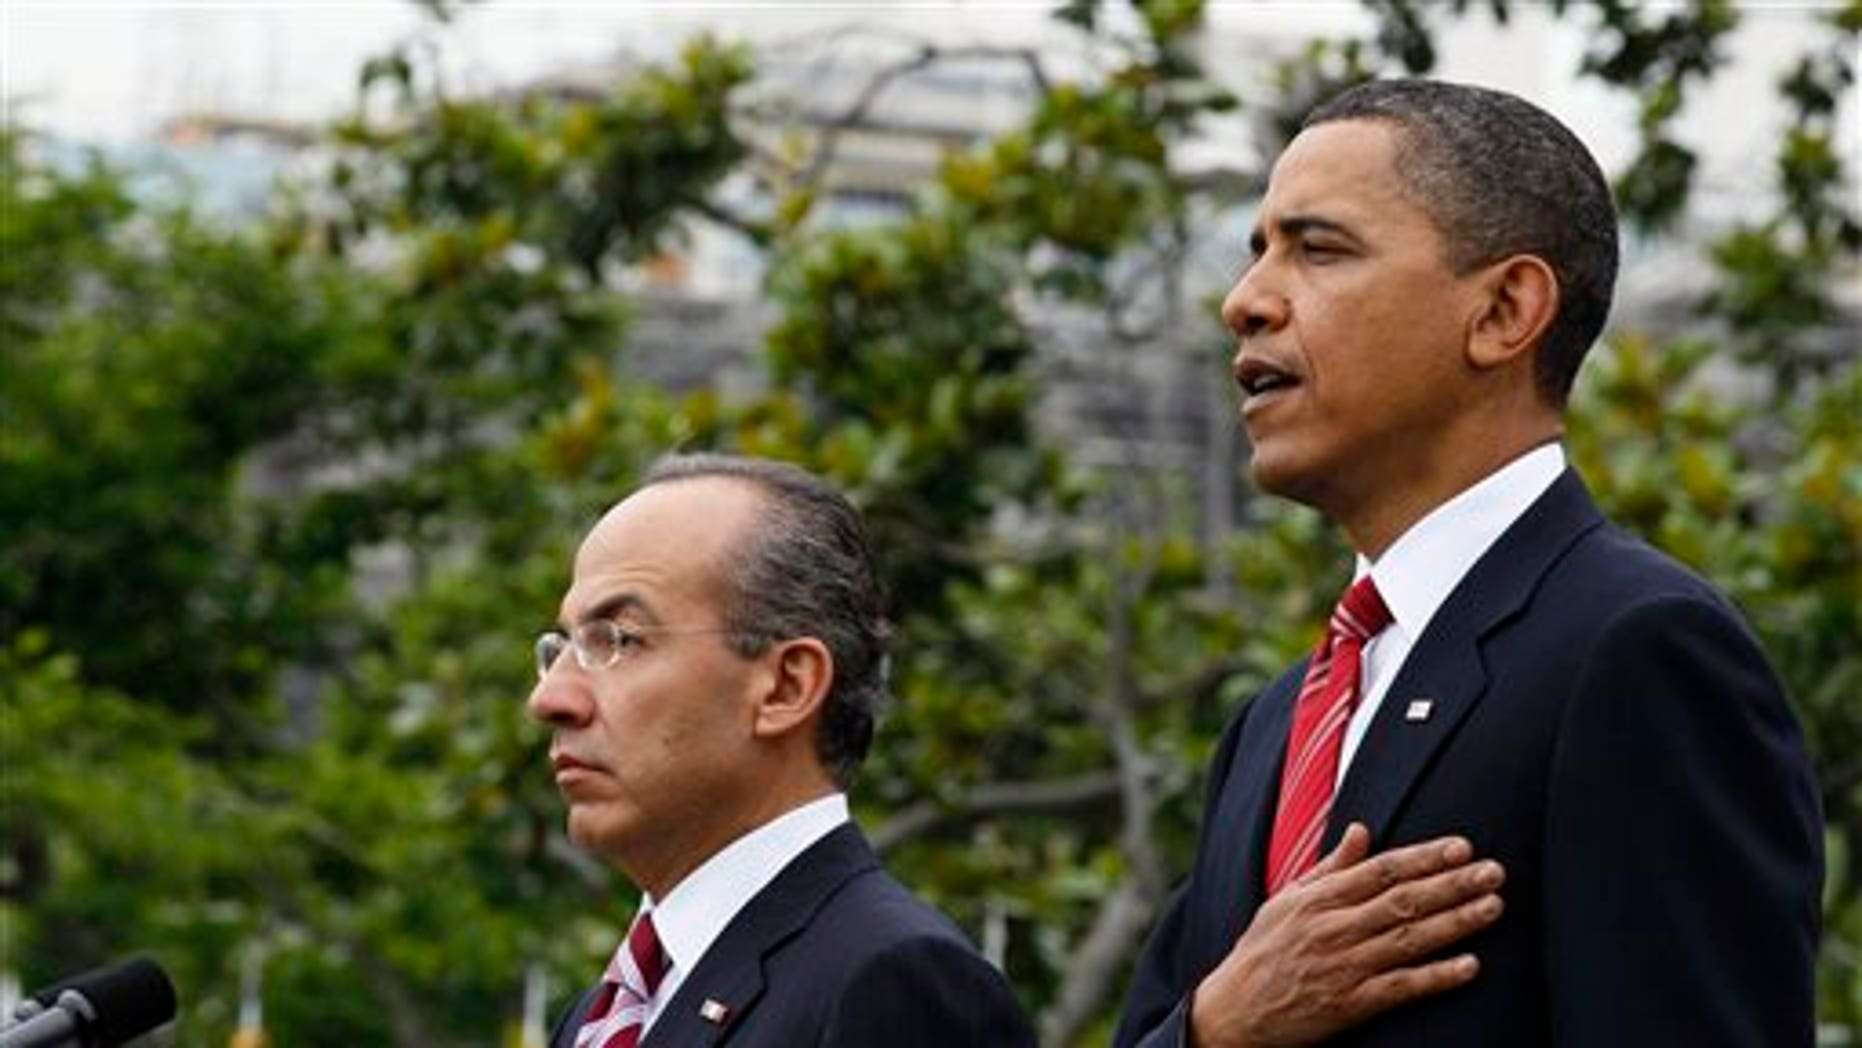 President Obama stands with Mexican President Felipe Calderon during the playing of the American National Anthem, on the South Lawn of the White House in Washington, Wednesday, May 19, 2010. President Calderon will be attending a state dinner at the White House with President Obama later in the evening (AP).